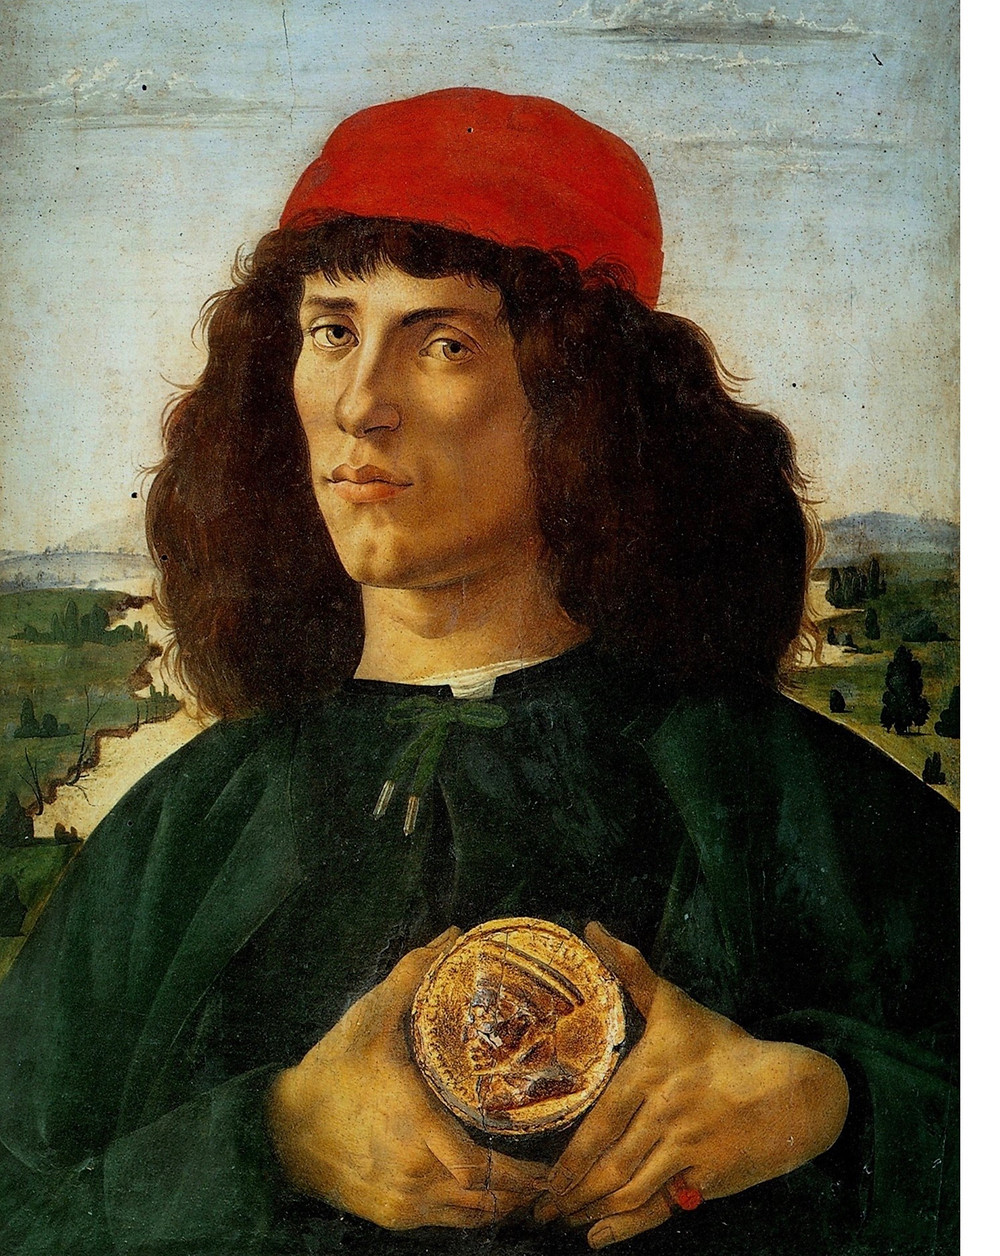 Botticelli, Portrait of a Man with a Medal, 1475